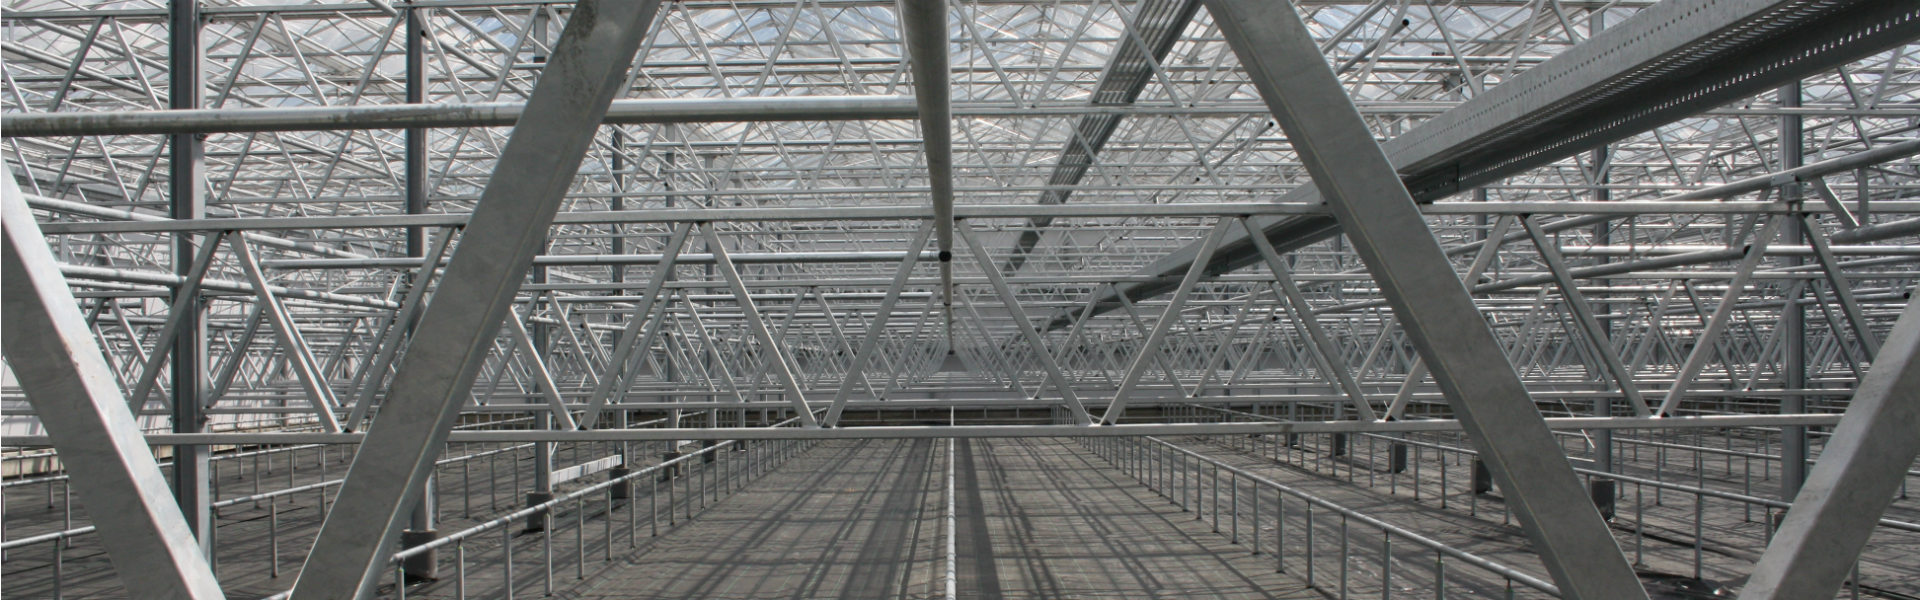 Steel greenhouse strucuture